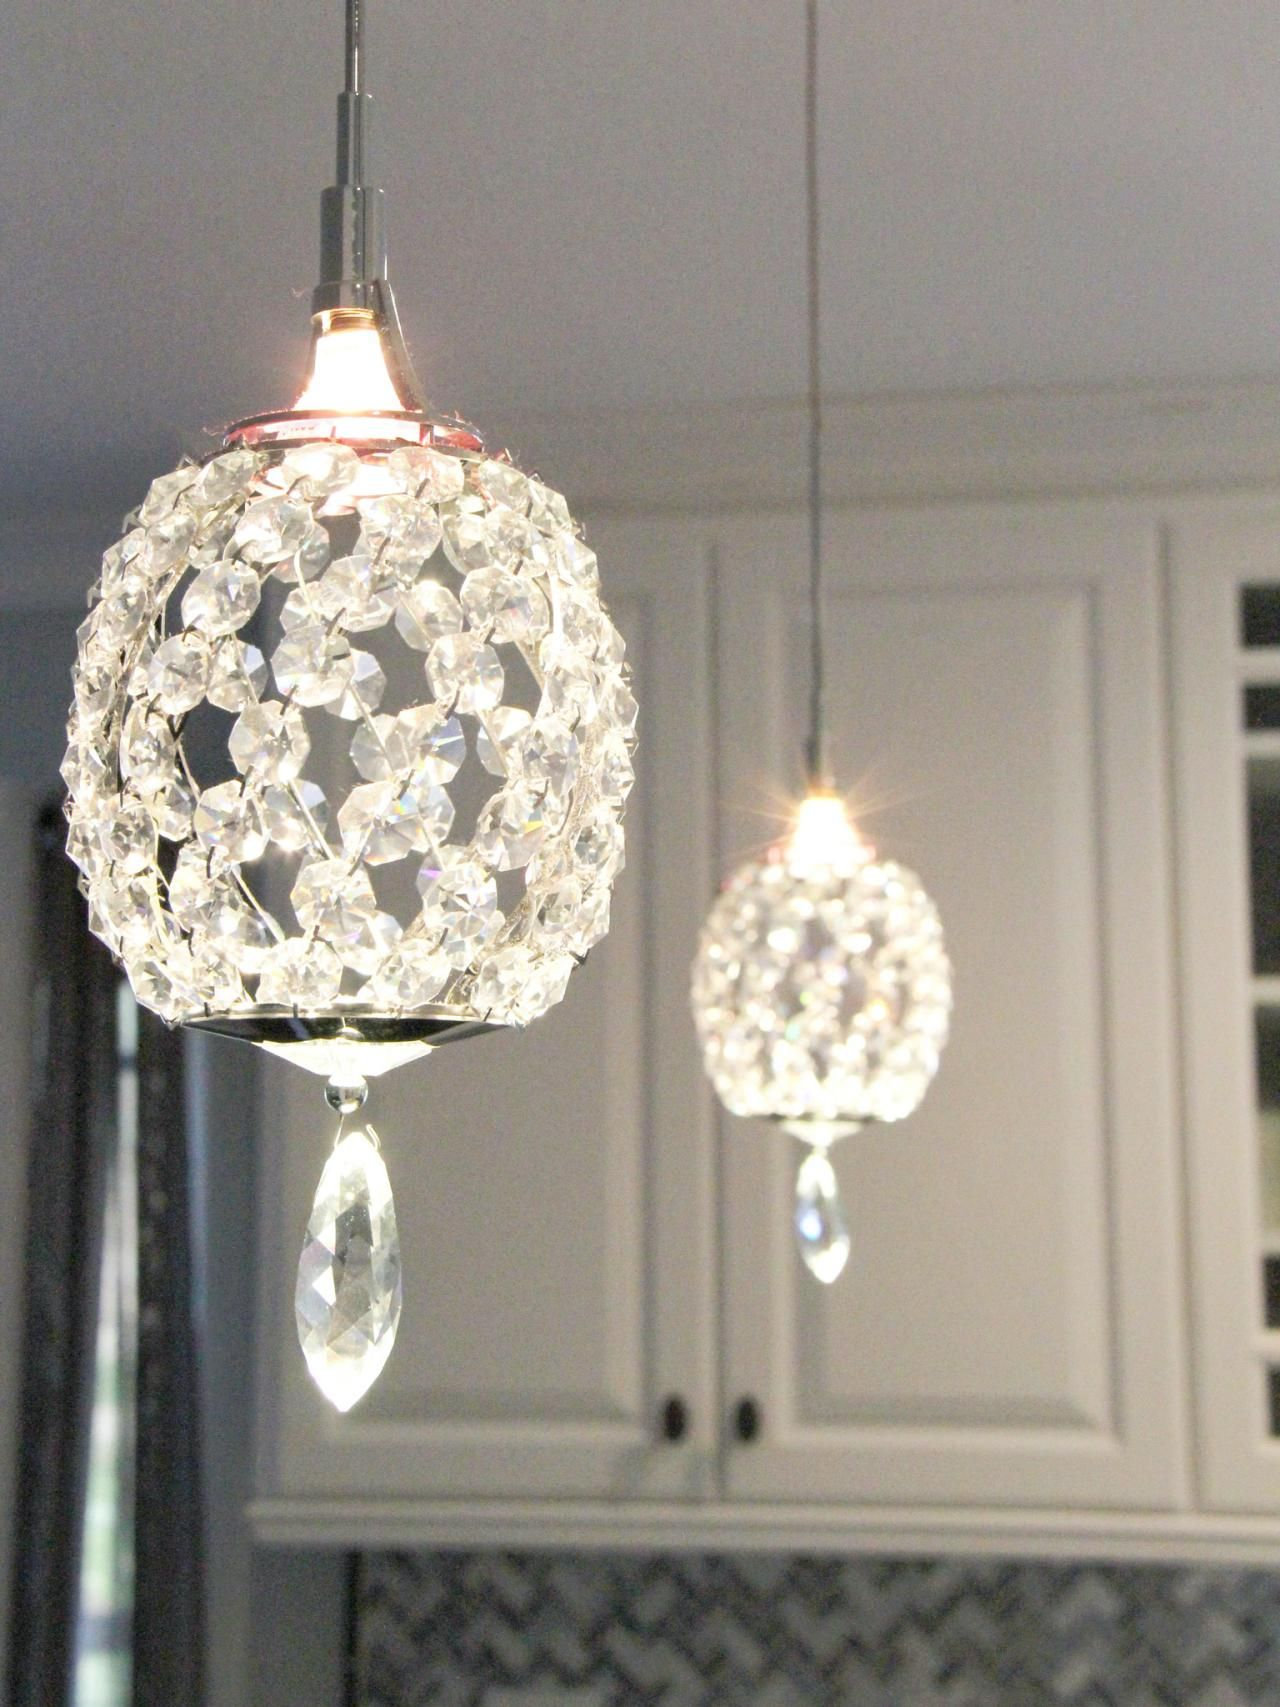 Crystal Pendant Lights Over A Peninsula Bring A Touch Of Glam To